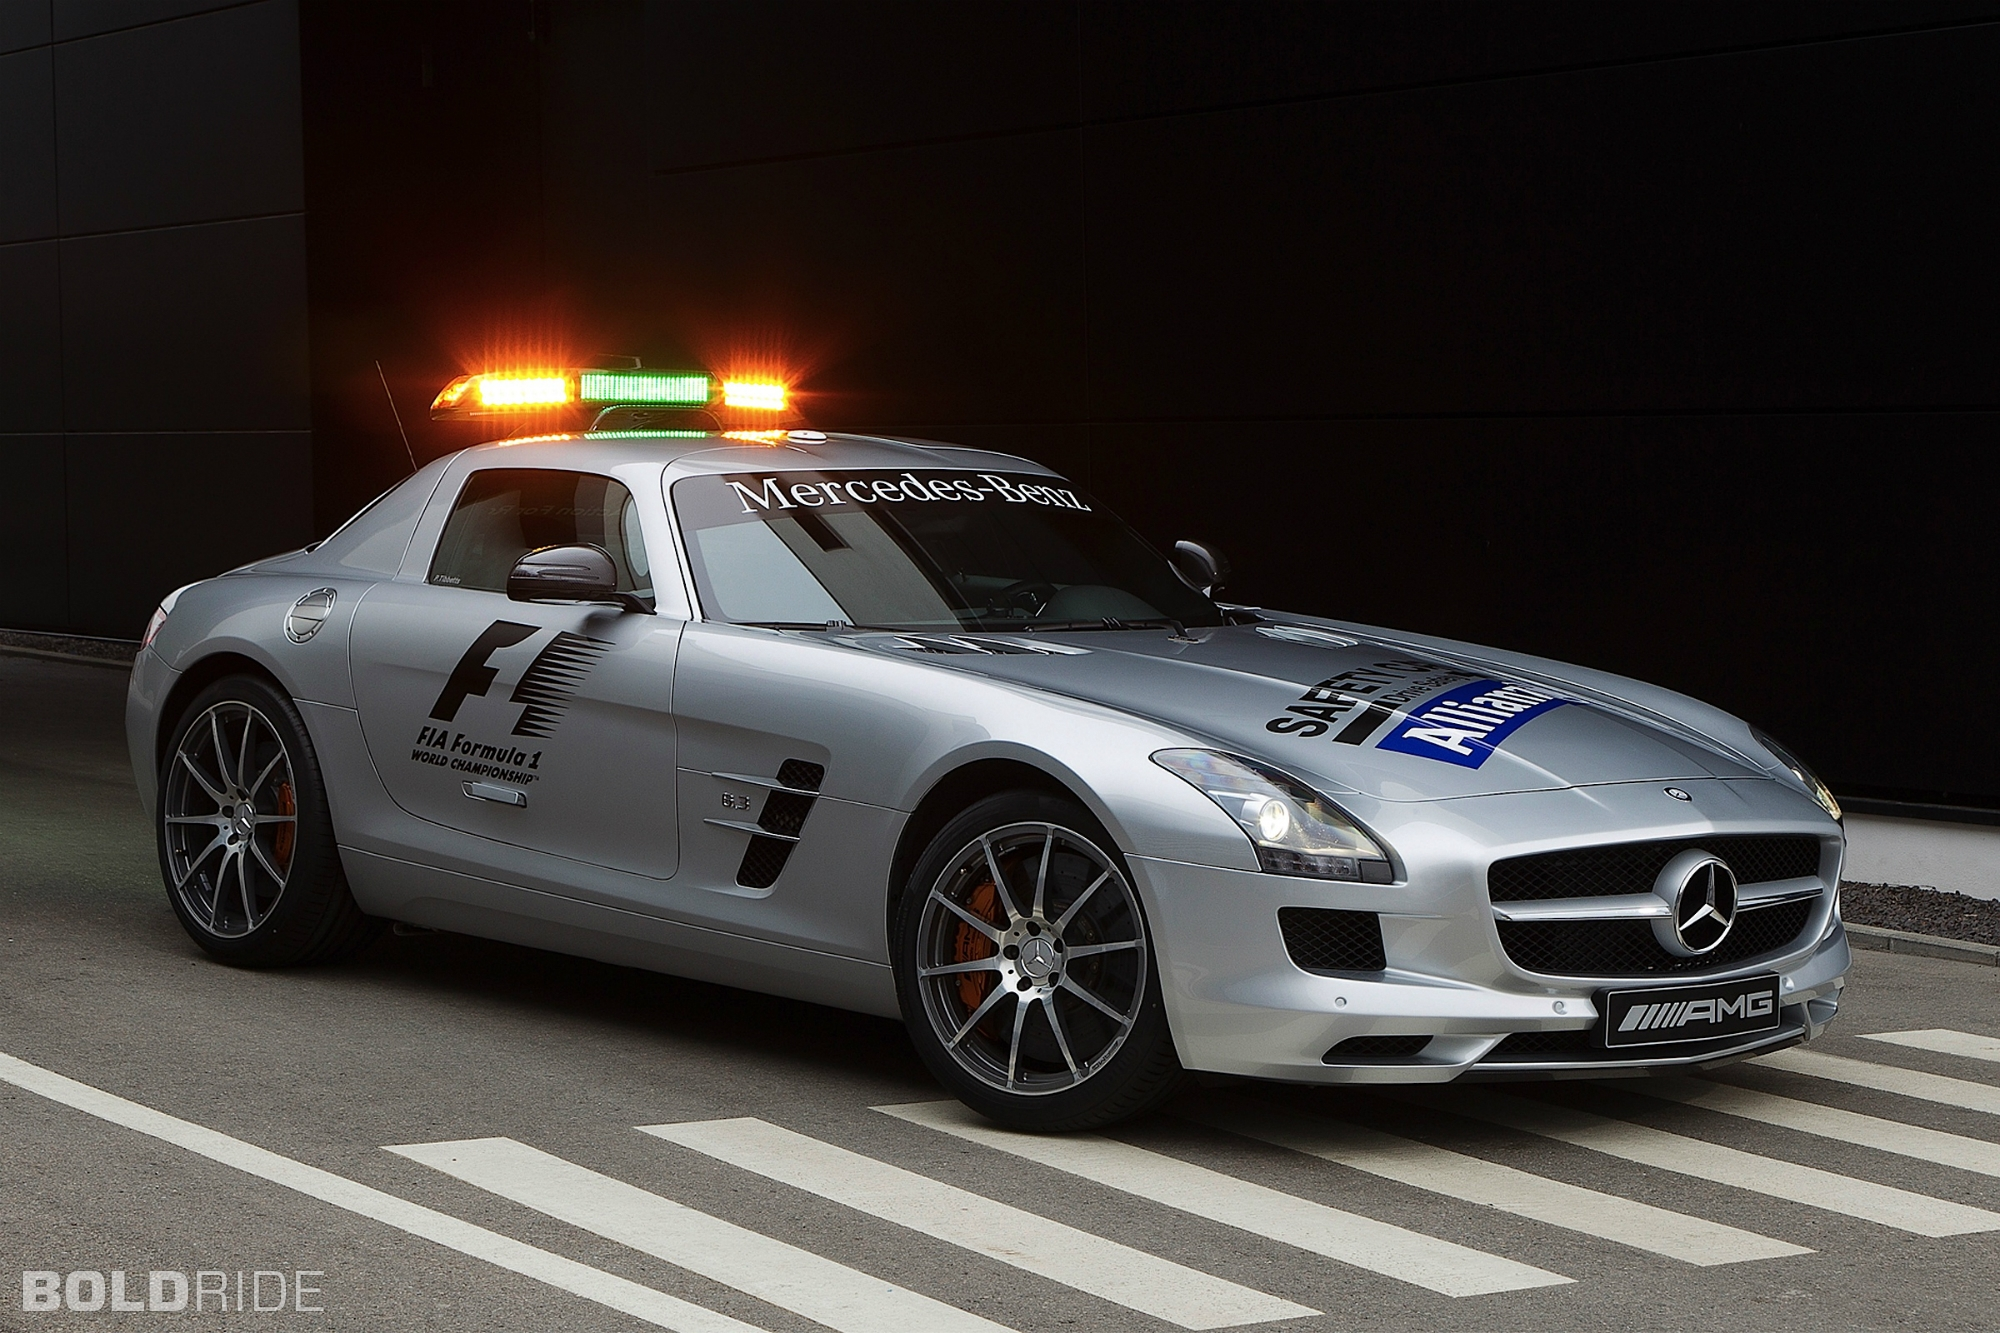 2012 Mercedes-Benz SLS AMG F1 Safety Car 1920 x 1080